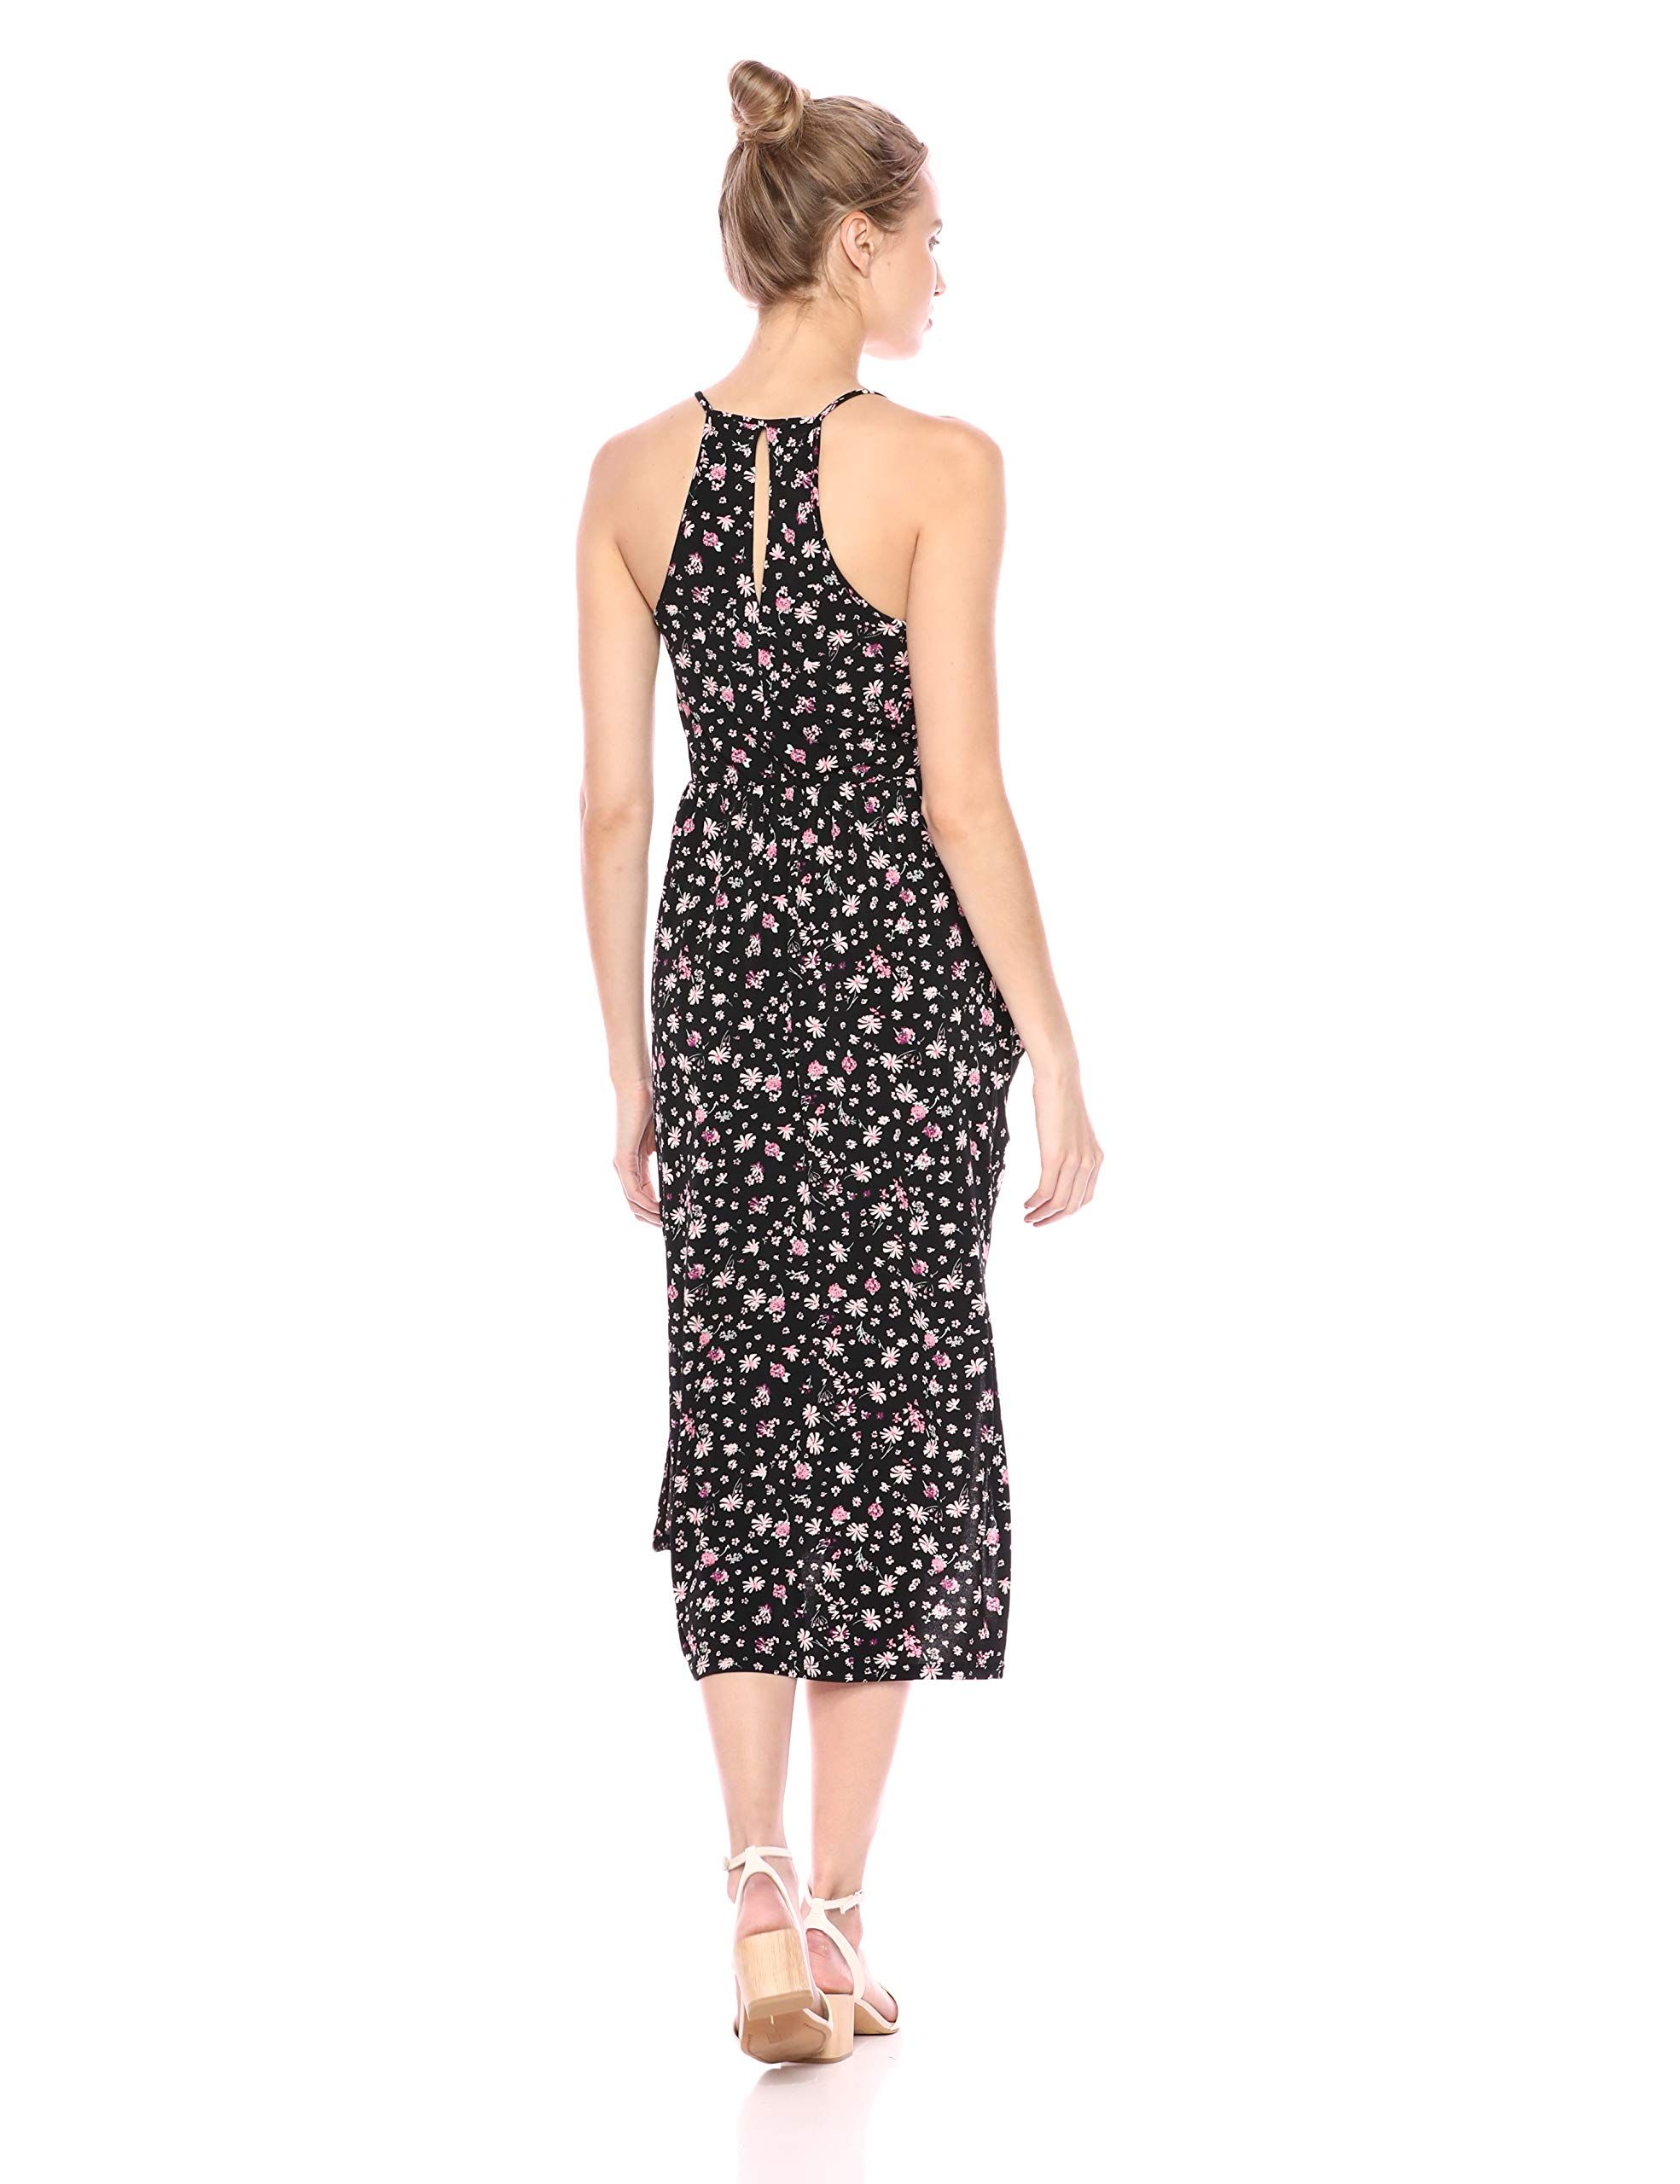 684ccdeac583fb BCBGeneration Women's Cocktail Drapey Pocket Knit Dress   Fashion in ...